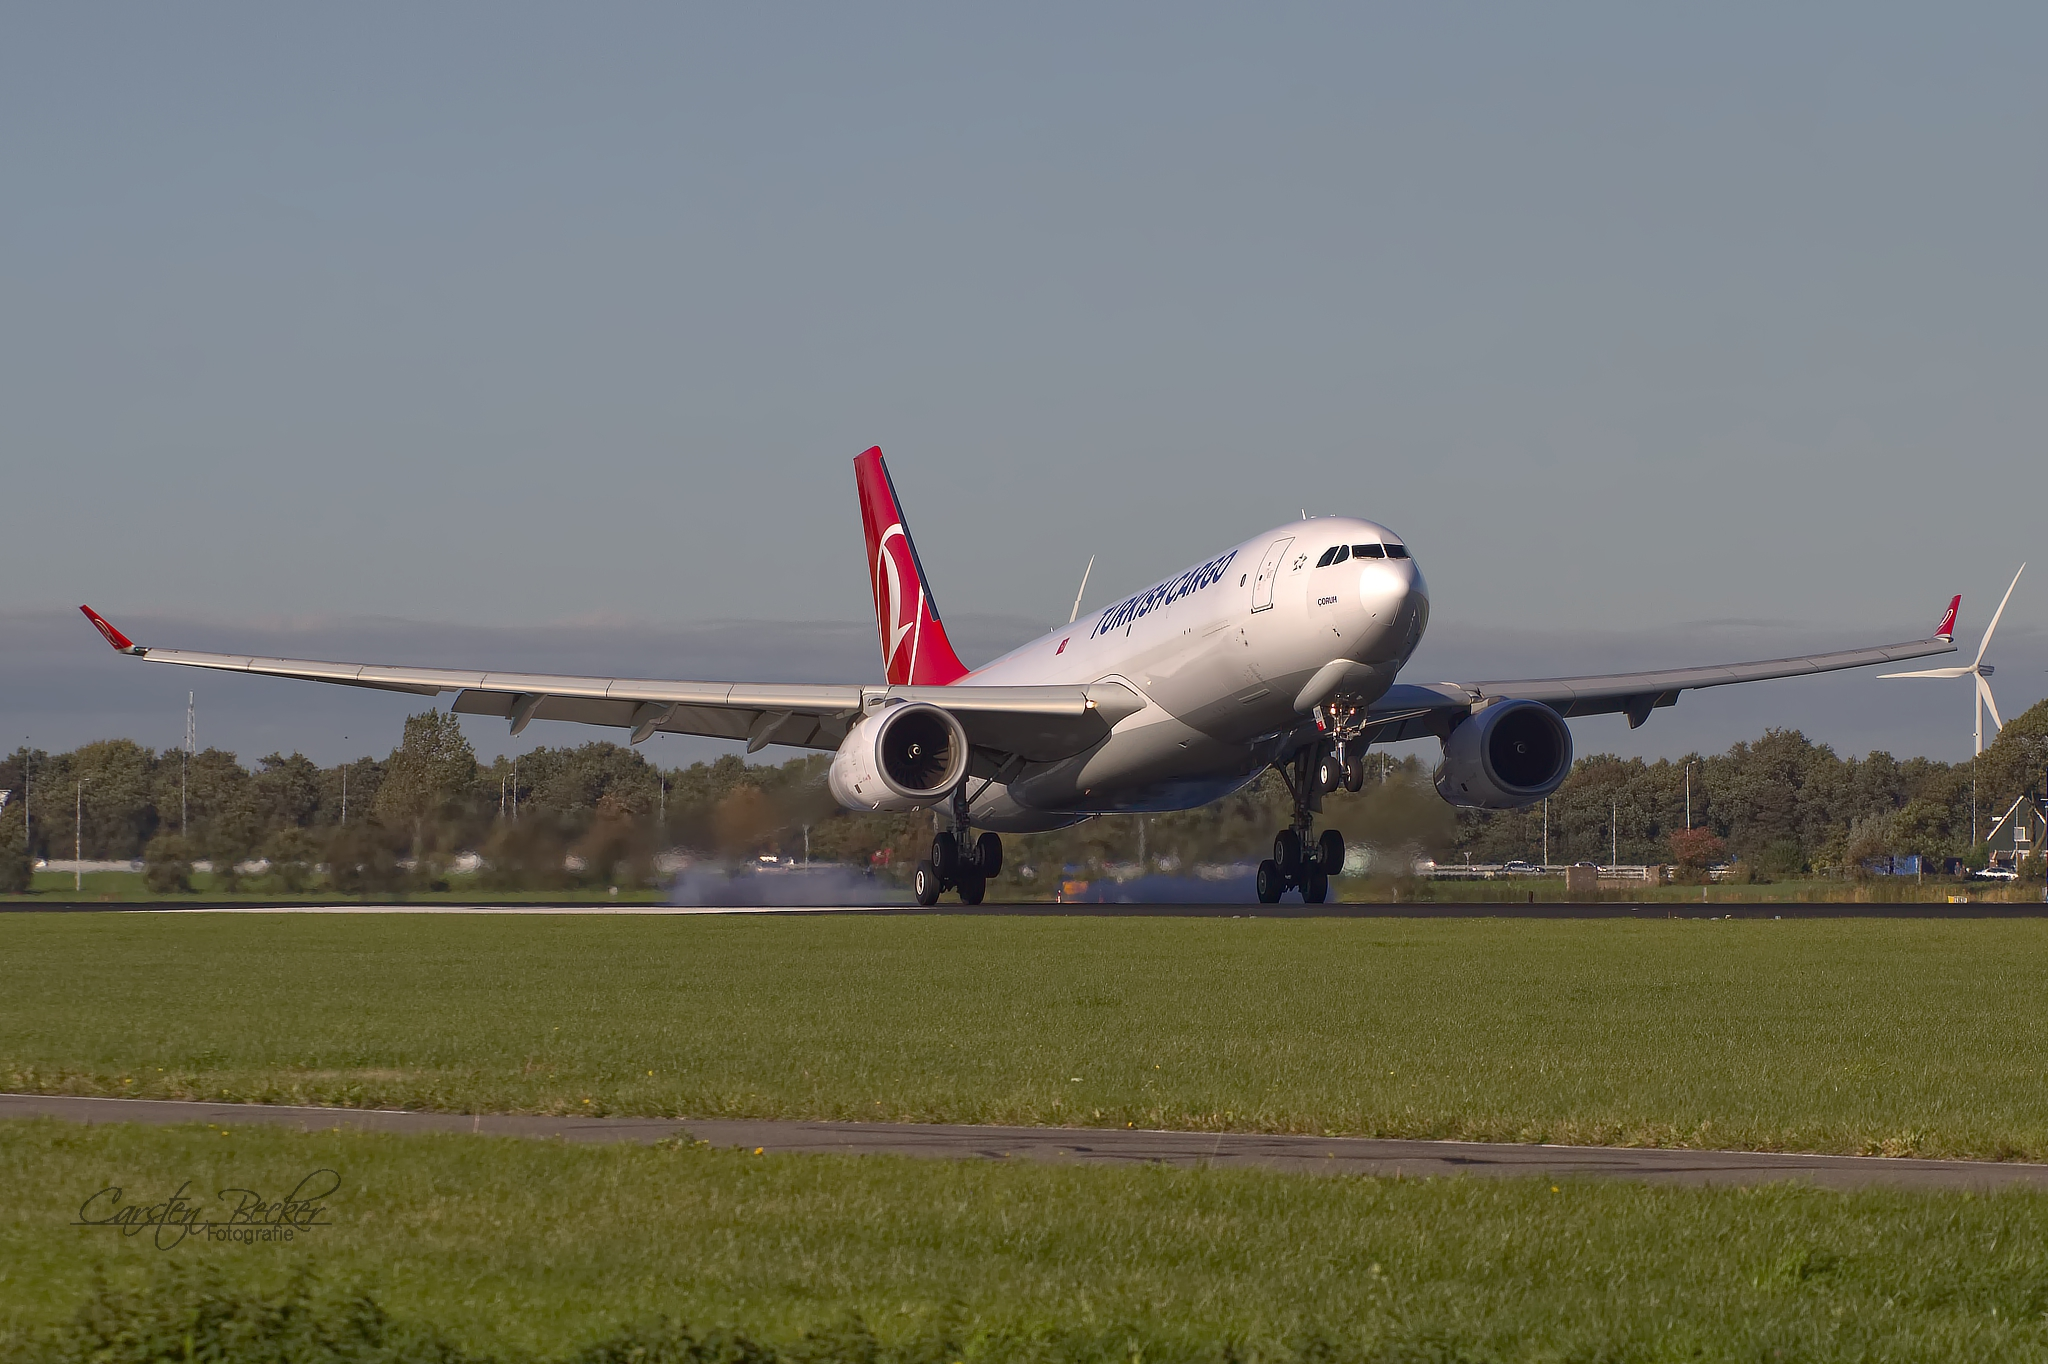 Turkish Airlines Cargo A330 TC-JOV